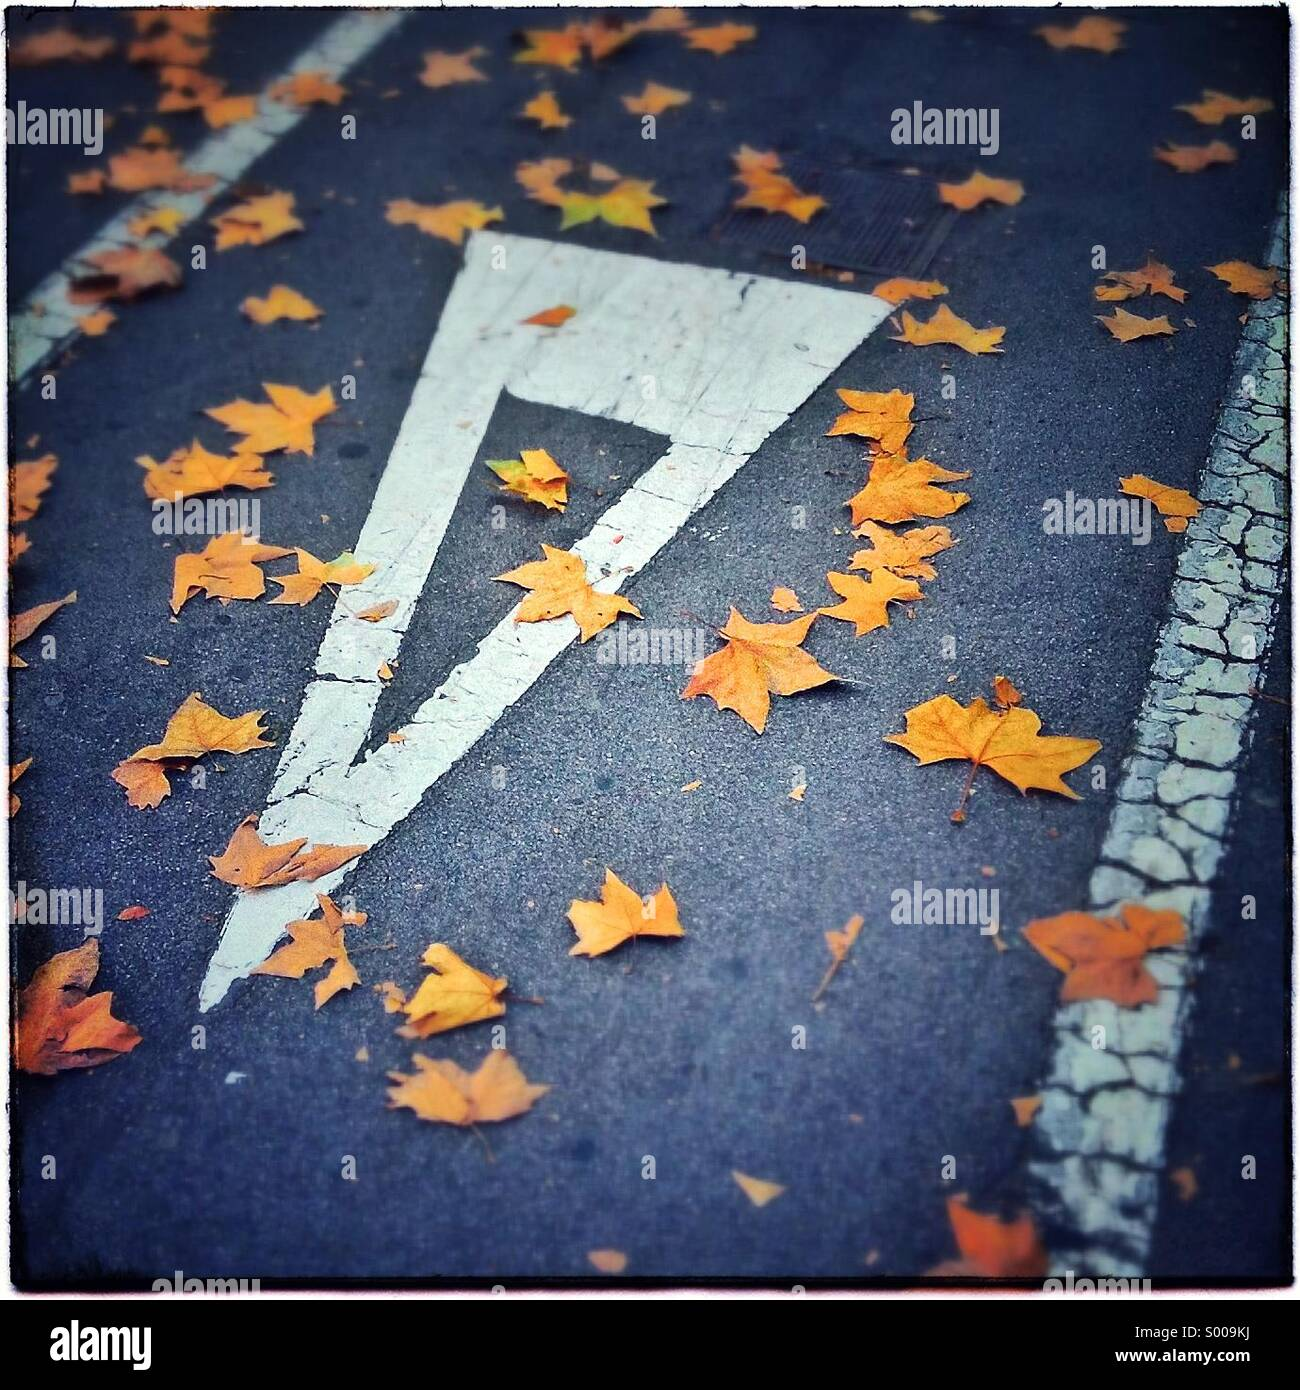 Gives way yield sign on autumm in Barcelona. Catalonia, Spain - Stock Image